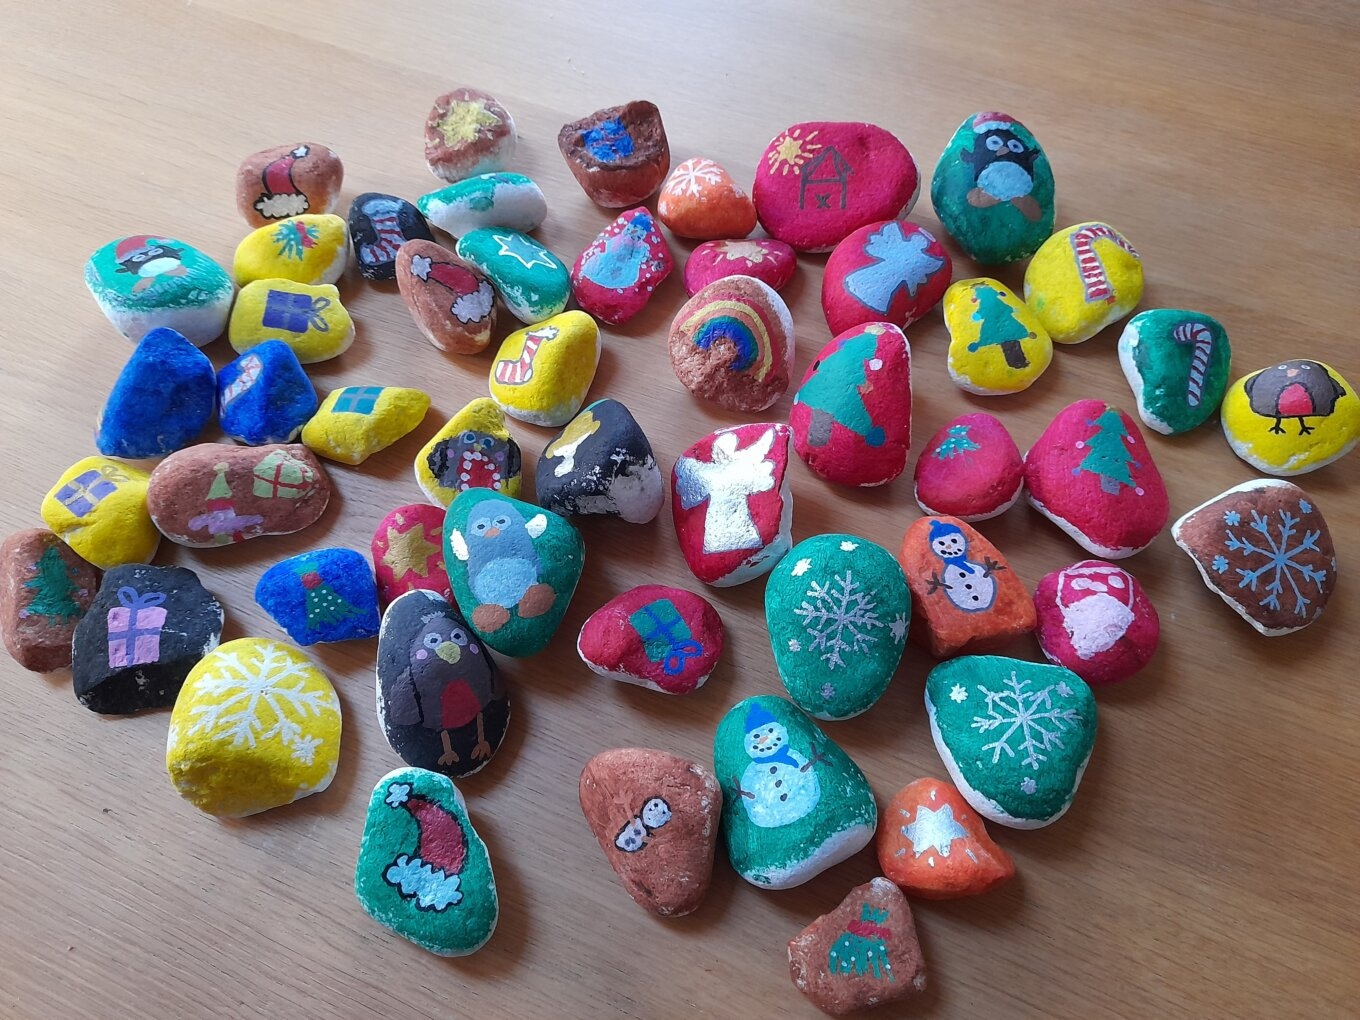 Darnall Pebbles painted by Arnolds